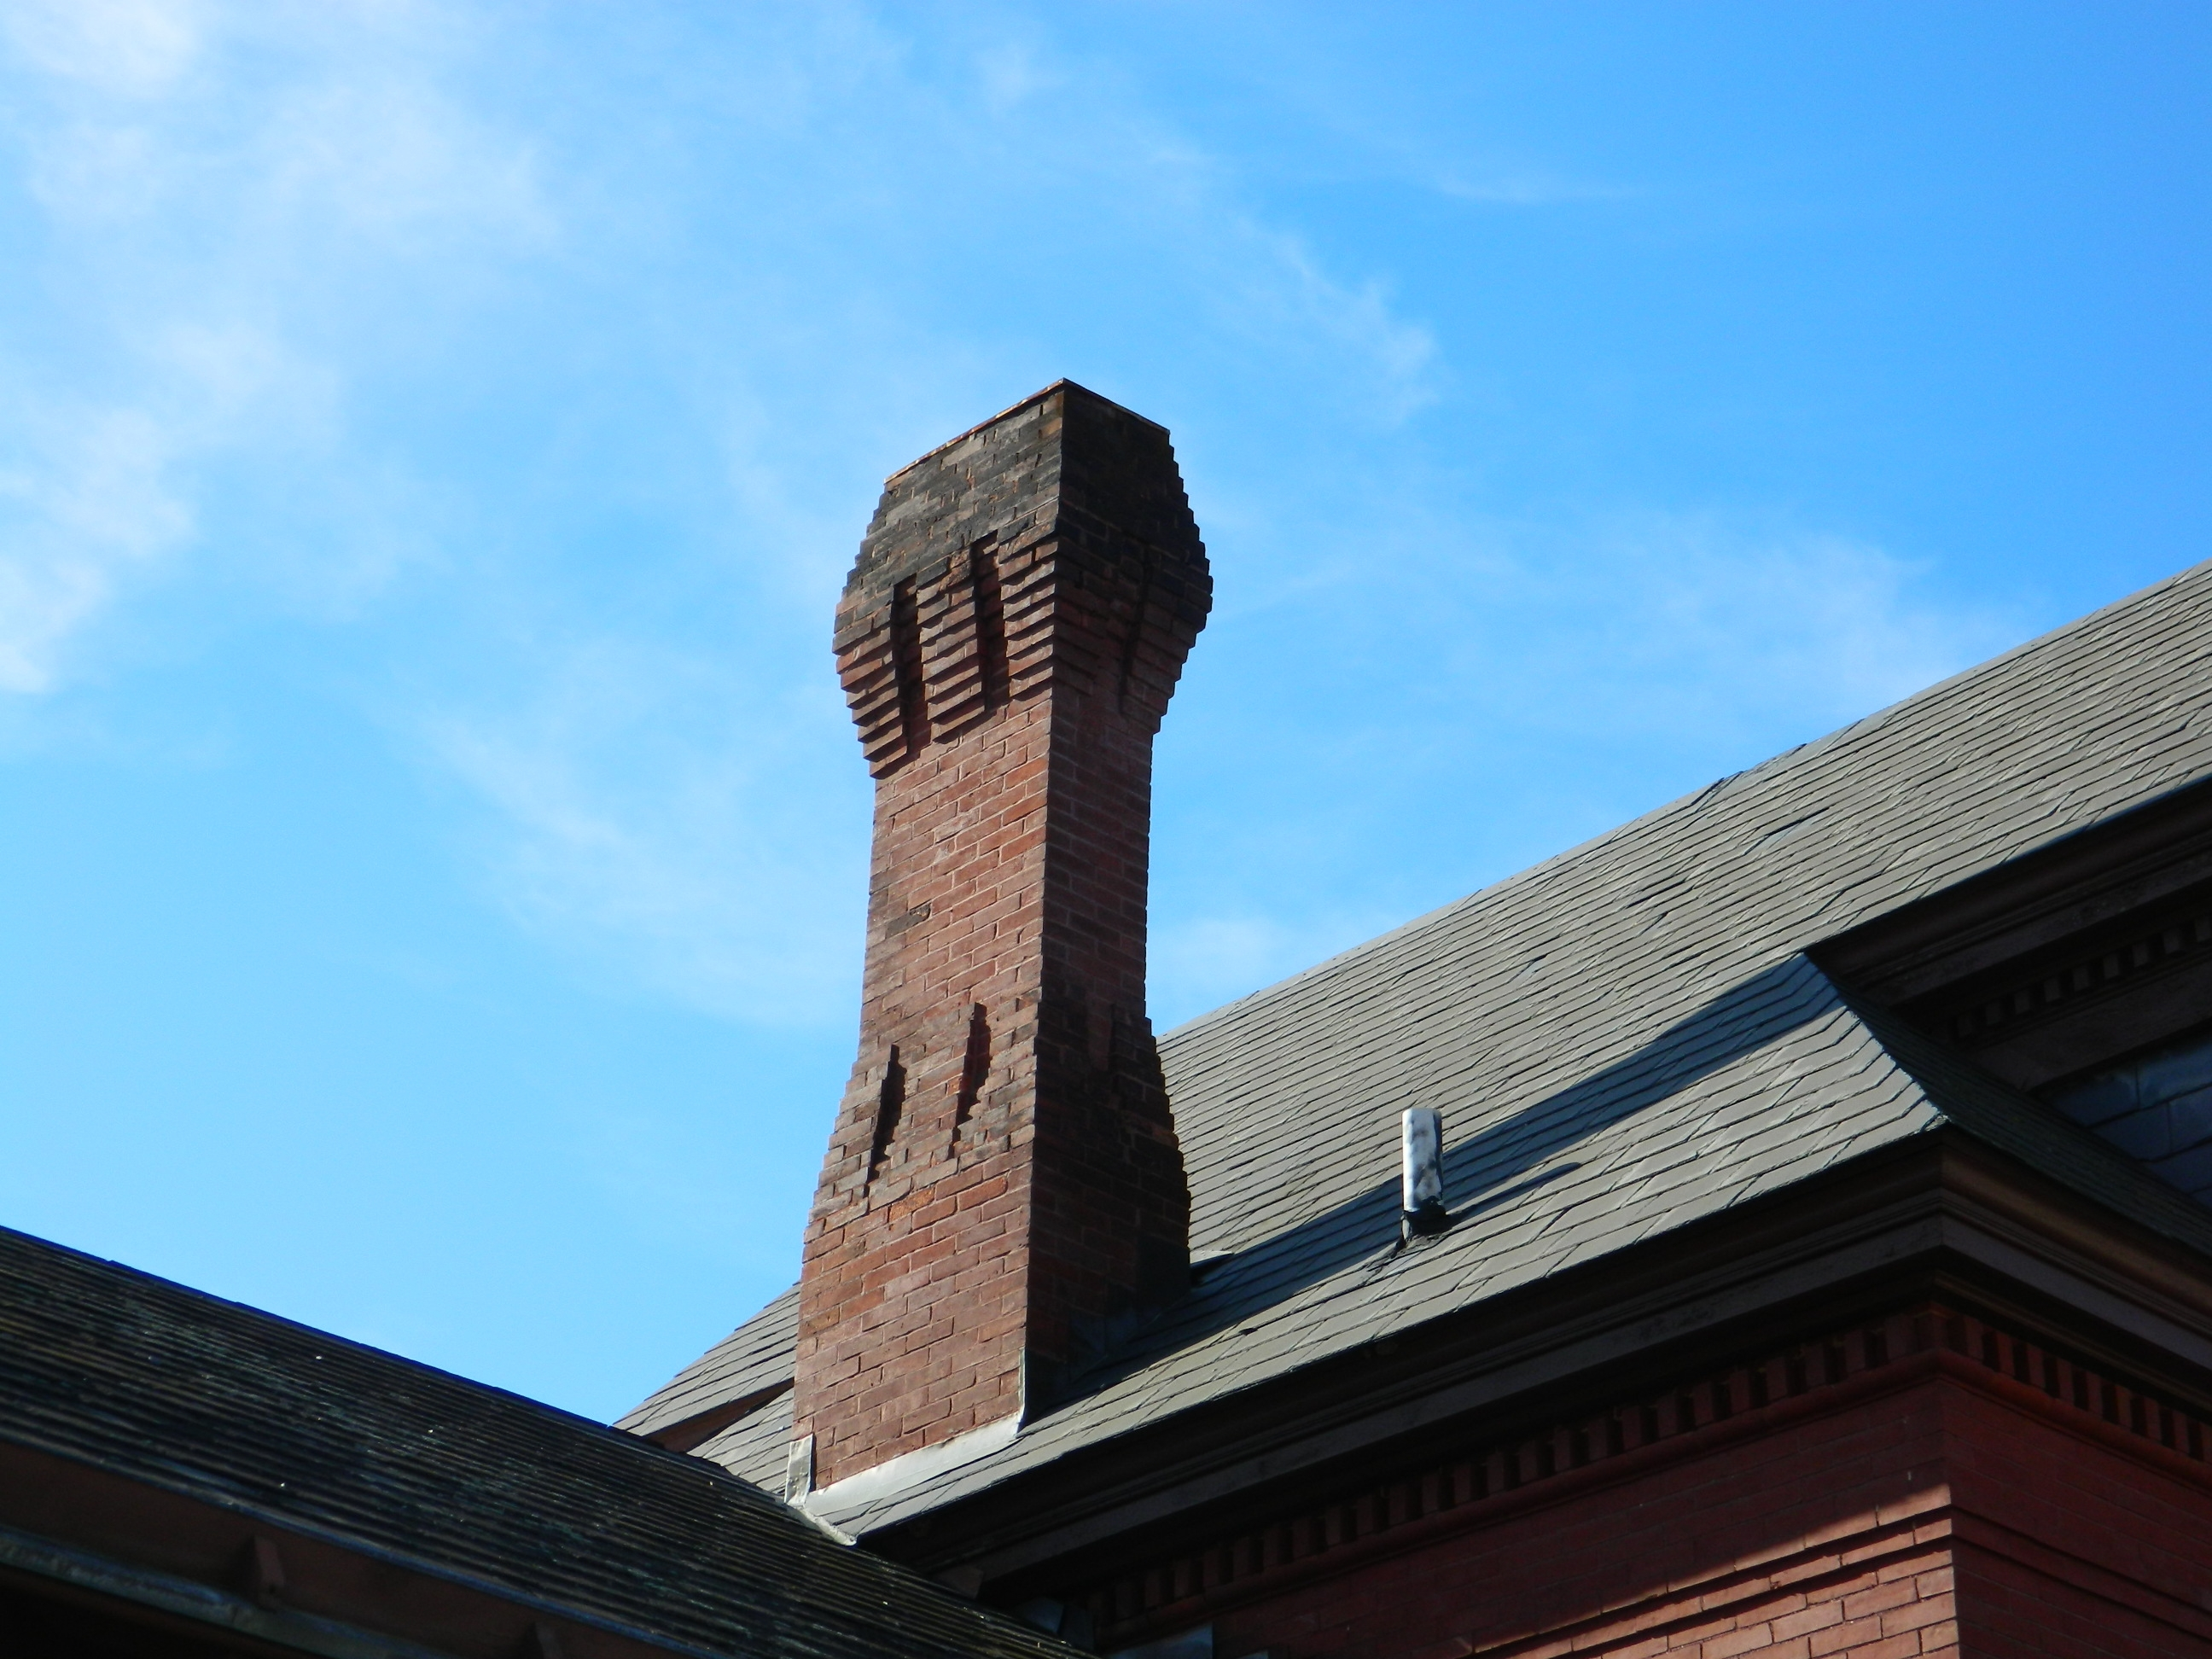 Baltimore & Ohio Railroad Station Chimney